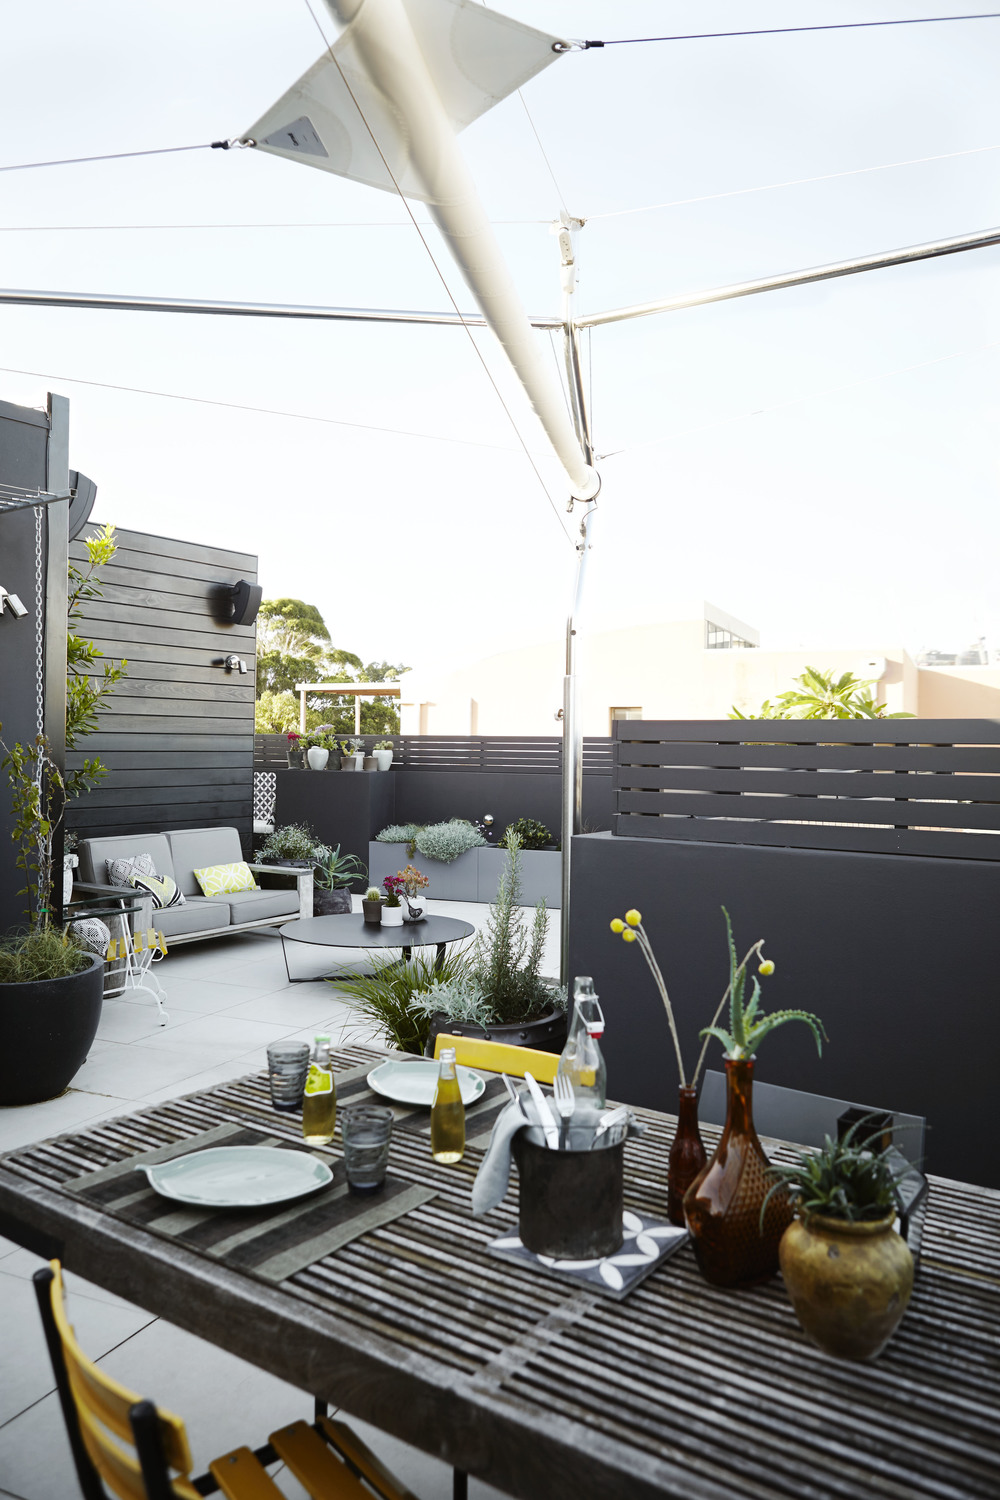 more from the Redfern Rooftop, smaller elements make up the table setting which flows through to a lounge area with bolder items